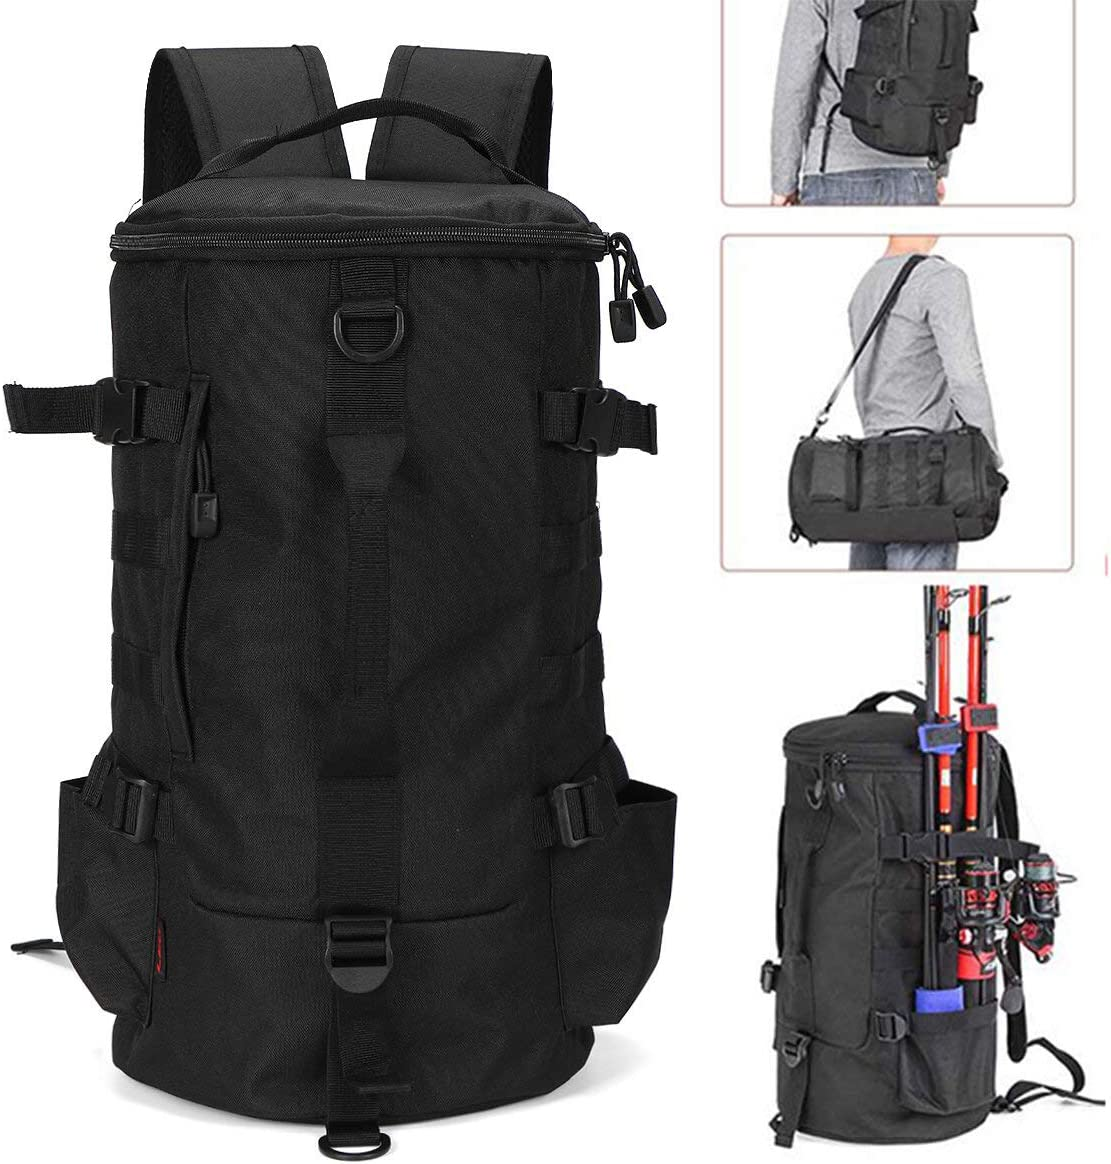 A-hyt Perfect New mail order Classic Fashion 23L Fishing Backpack Outs Bag Tool